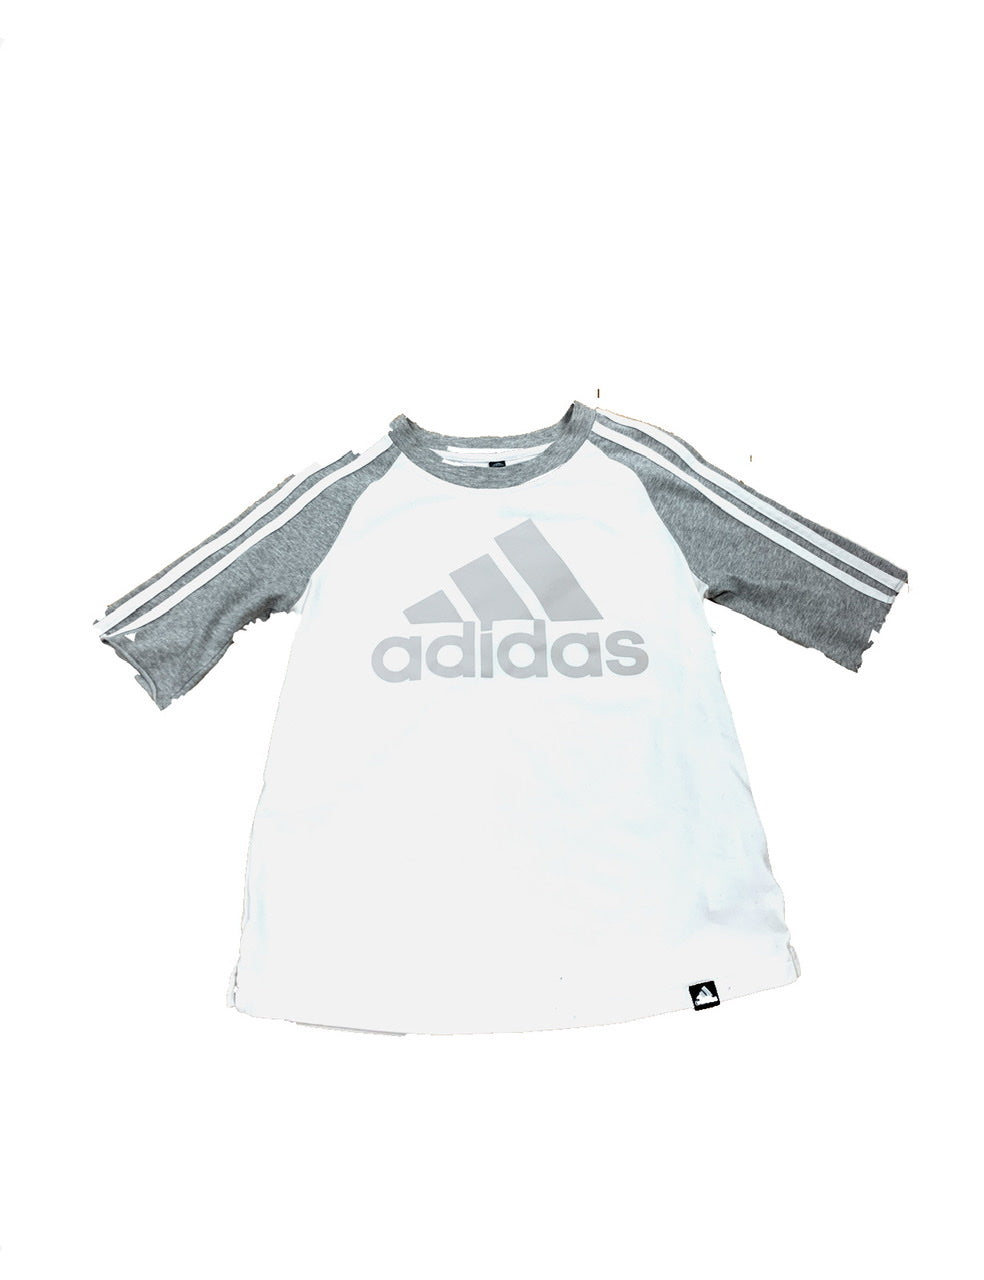 Primary Photo - BRAND: ADIDAS<BR>STYLE: ATHLETIC TOP SHORT SLEEVE<BR>COLOR: GREY WHITE<BR>SIZE: XS<BR>SKU: 196-19694-33043